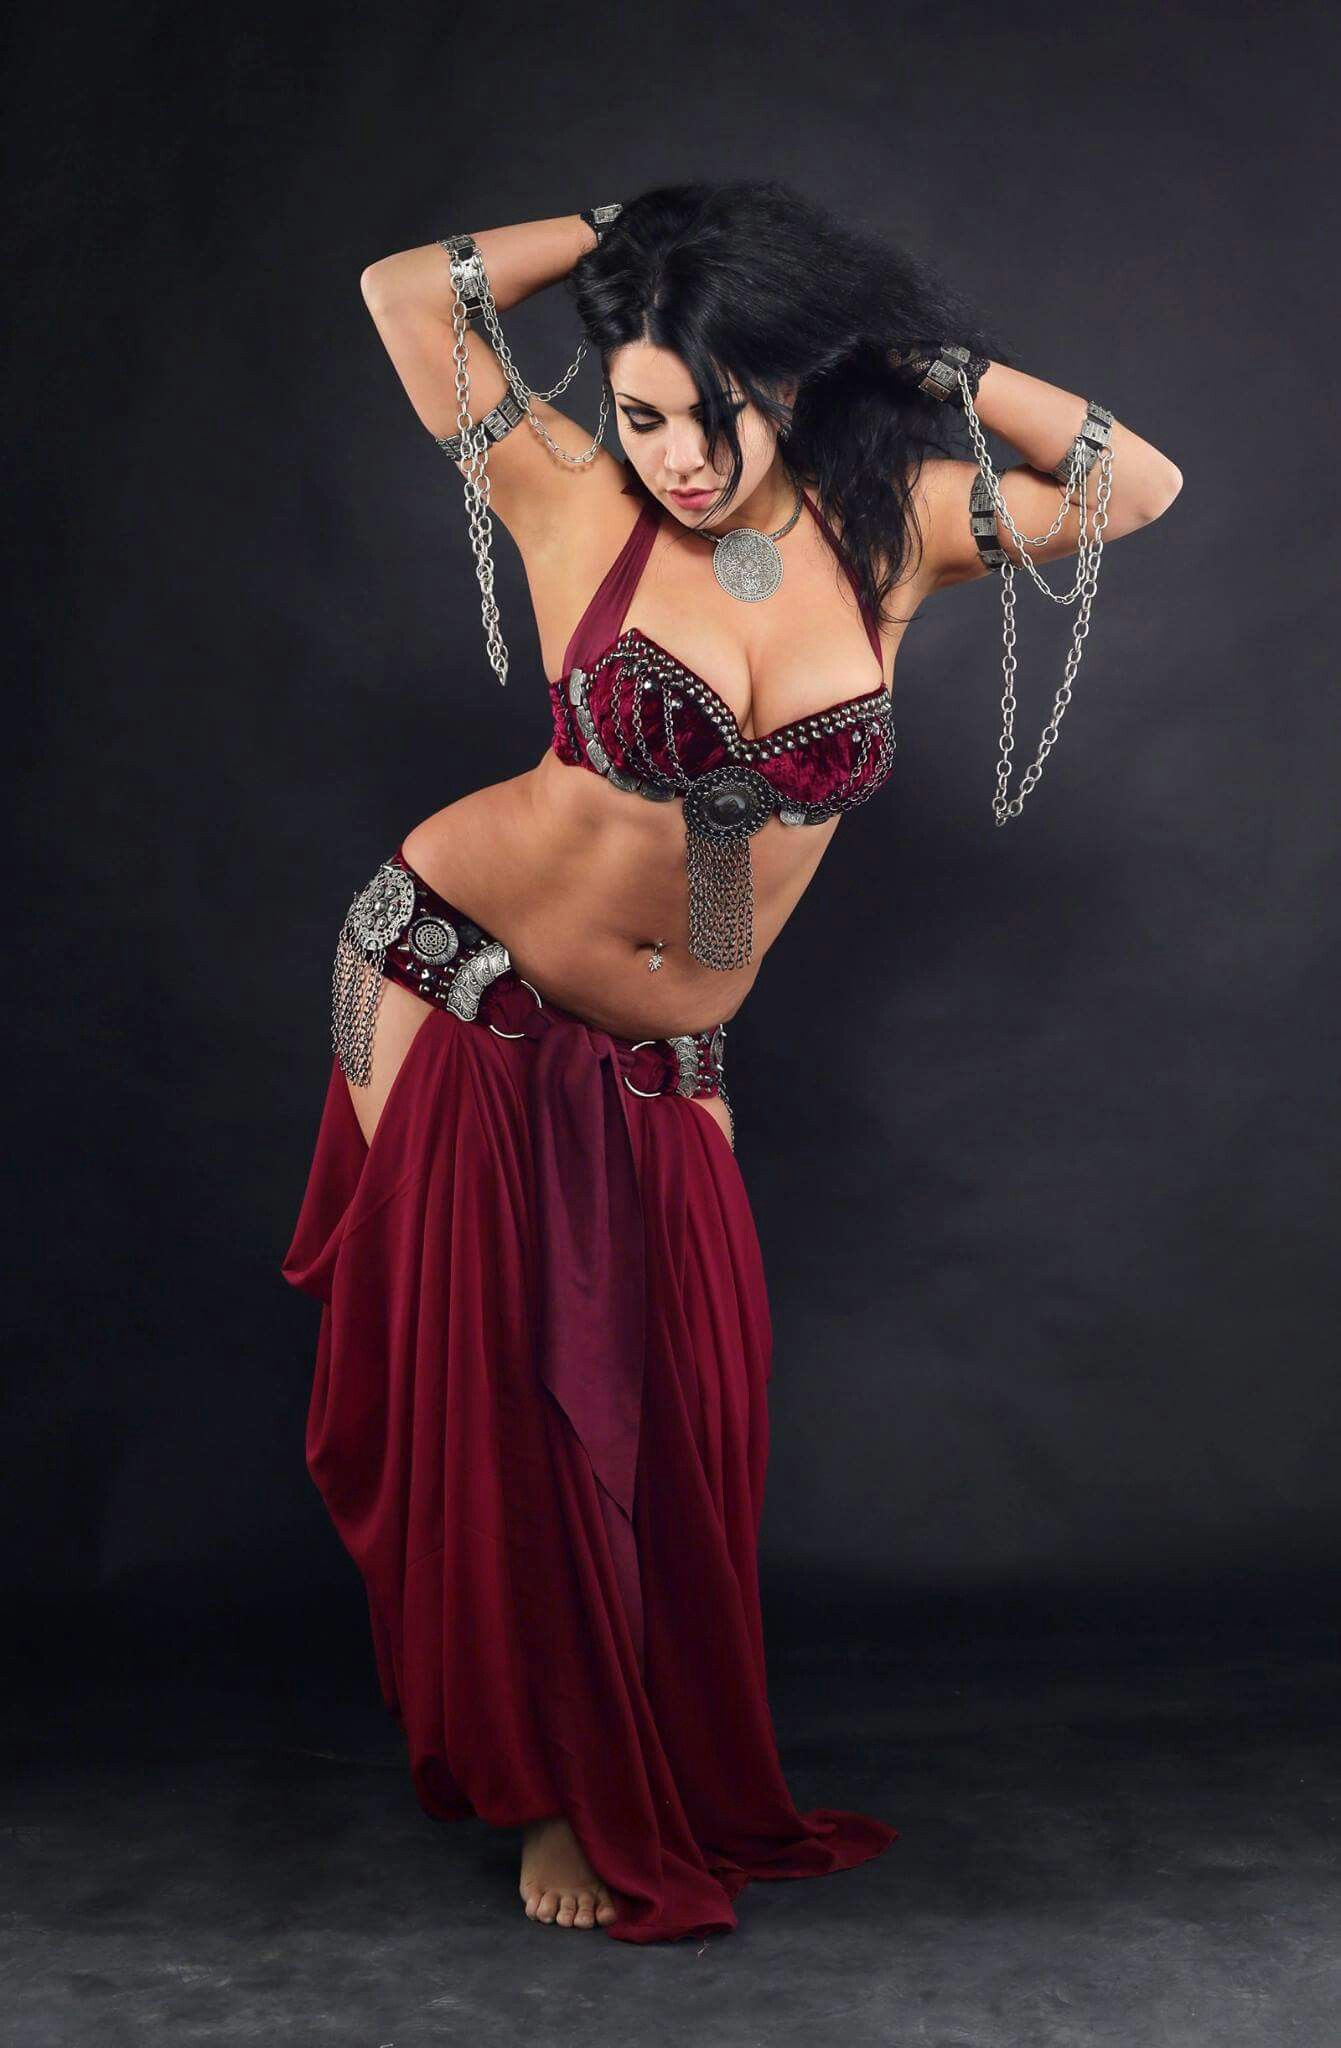 Monroe blonde belly dancer